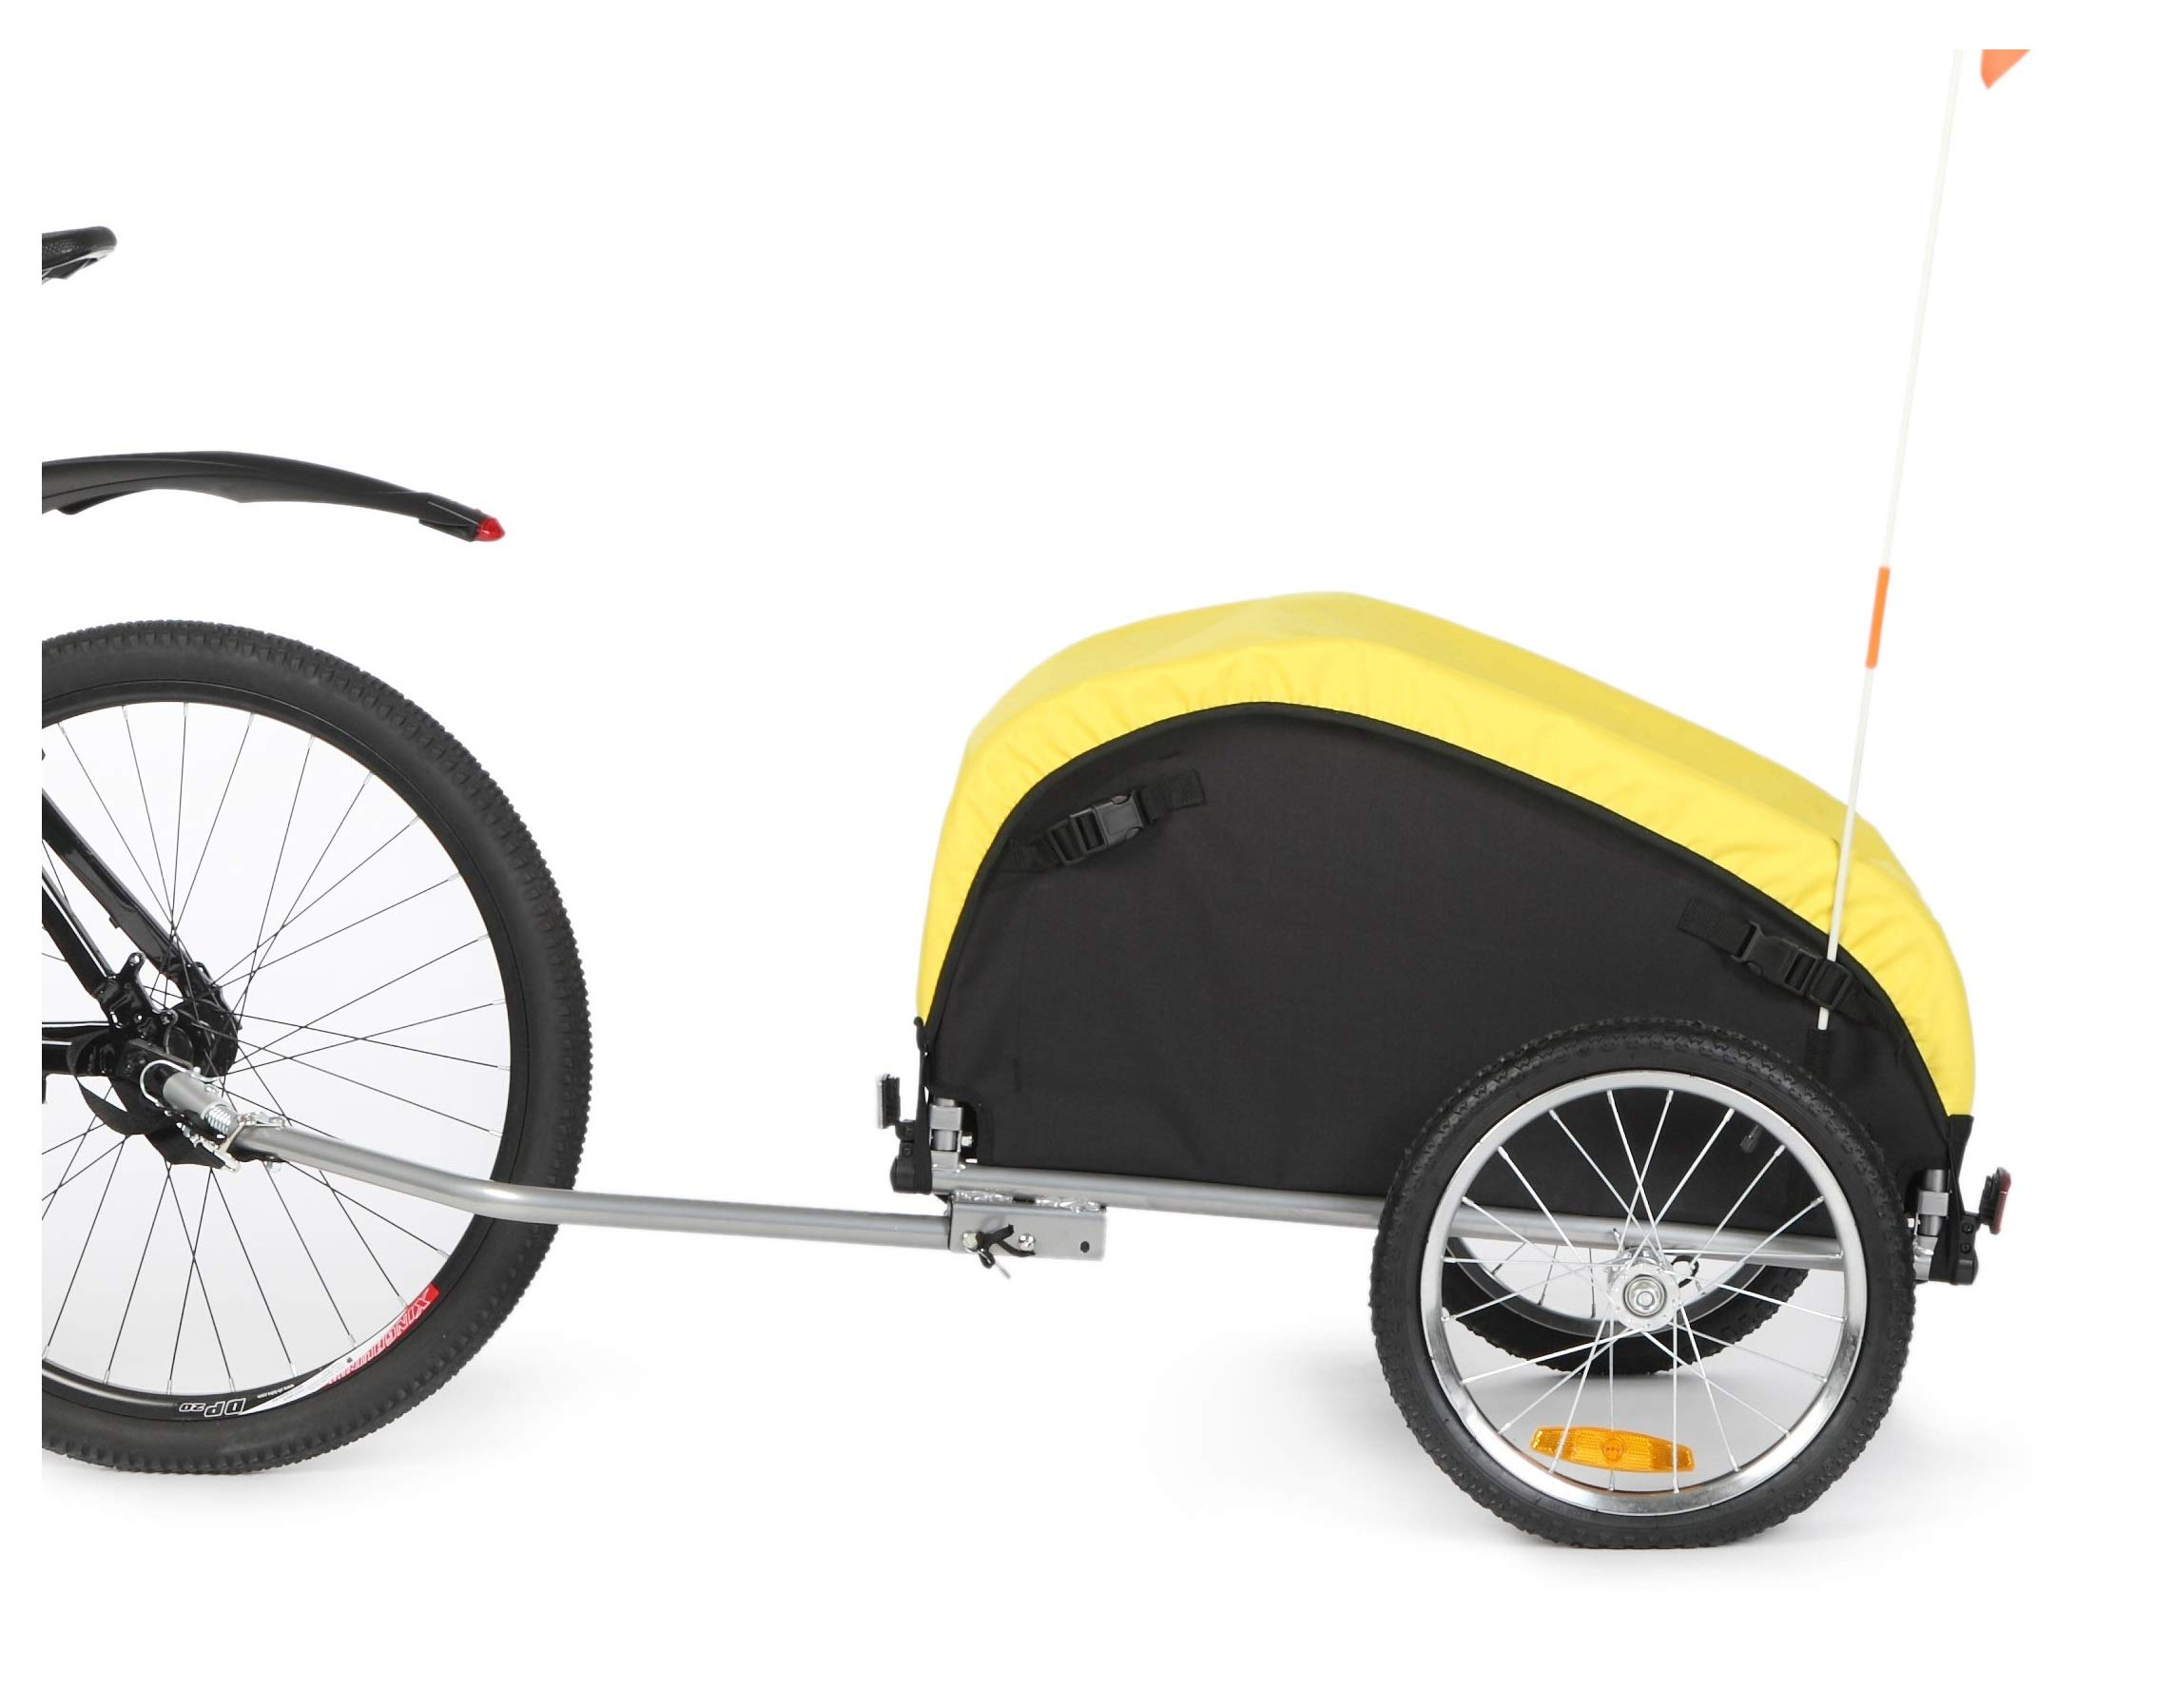 Sepnine Cargo Trailer with removeable weather cover 20217 (yellow/black)